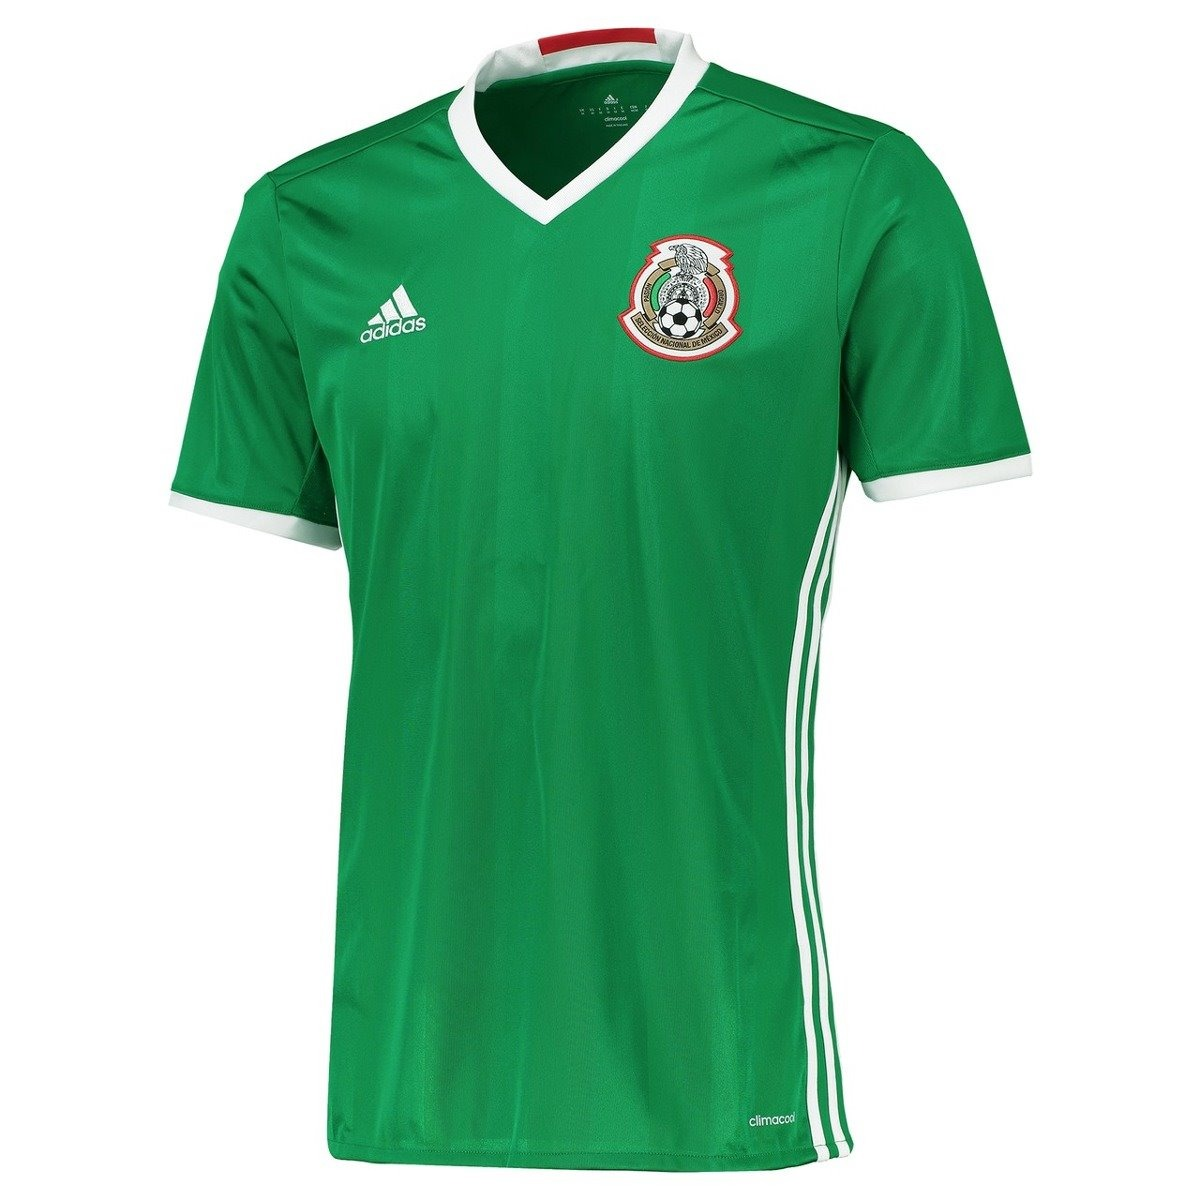 Jersey Seleccion Mexico Verde Local Adizero 2015 16 17 -   799.00 en ... 171d39a1106cf